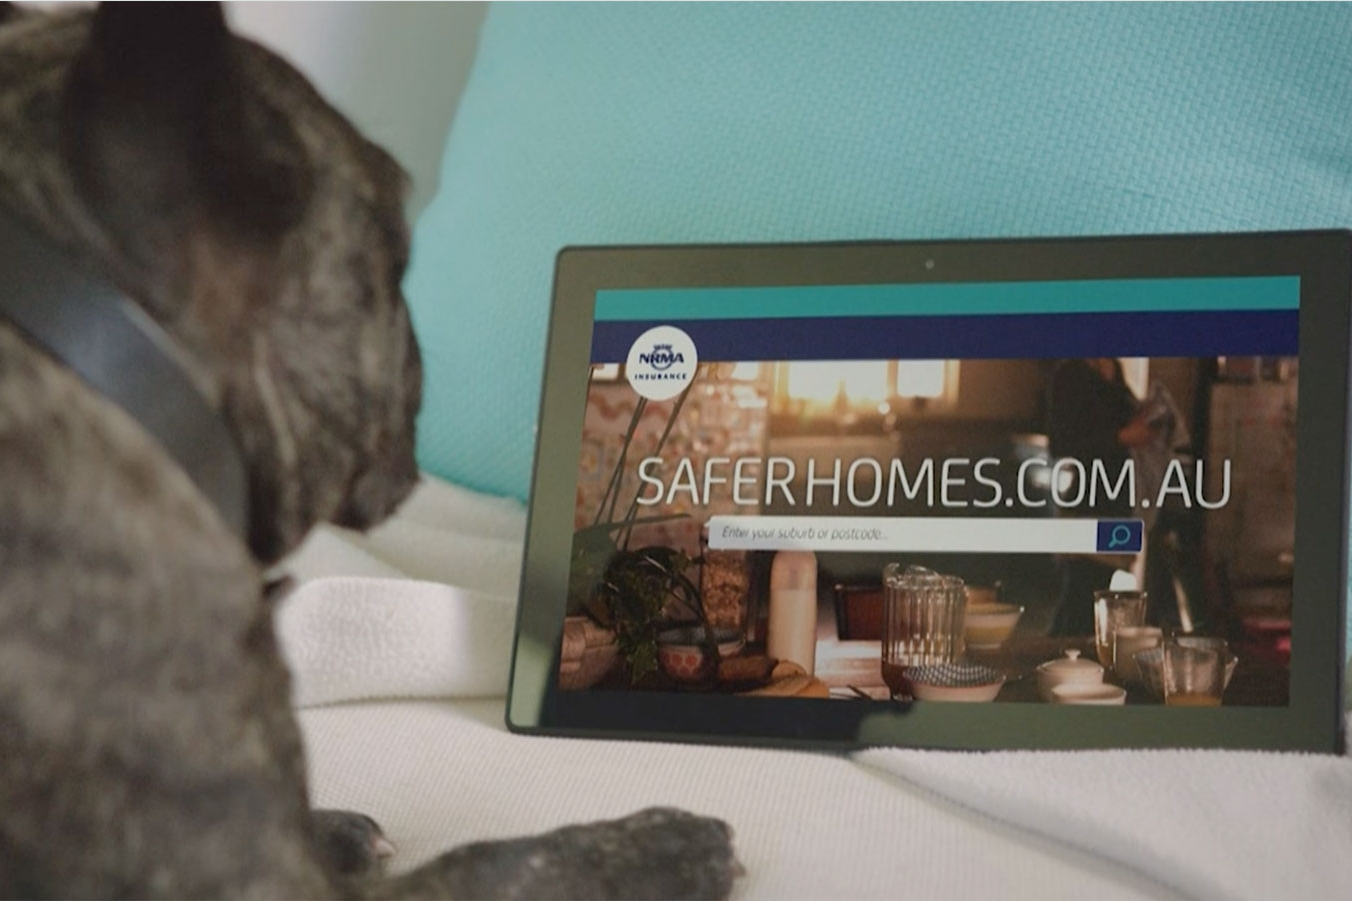 - NRMA's Safer Homes brought marketing and product together, using locally-sourced data to keep Australian communities one step ahead of the risks they face.